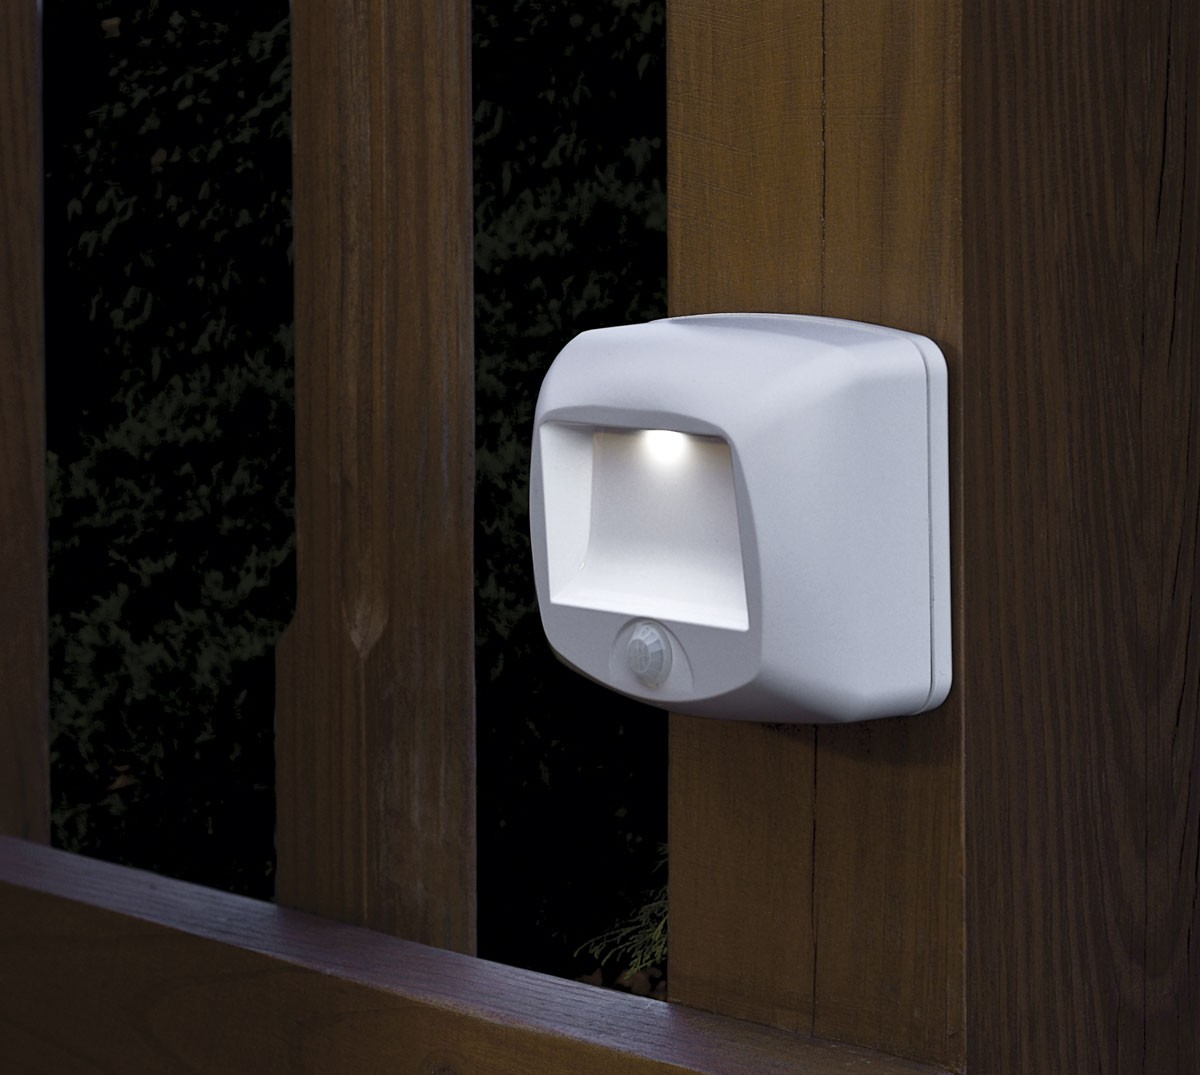 Battery Outdoor Light – A necessity for any backyard or